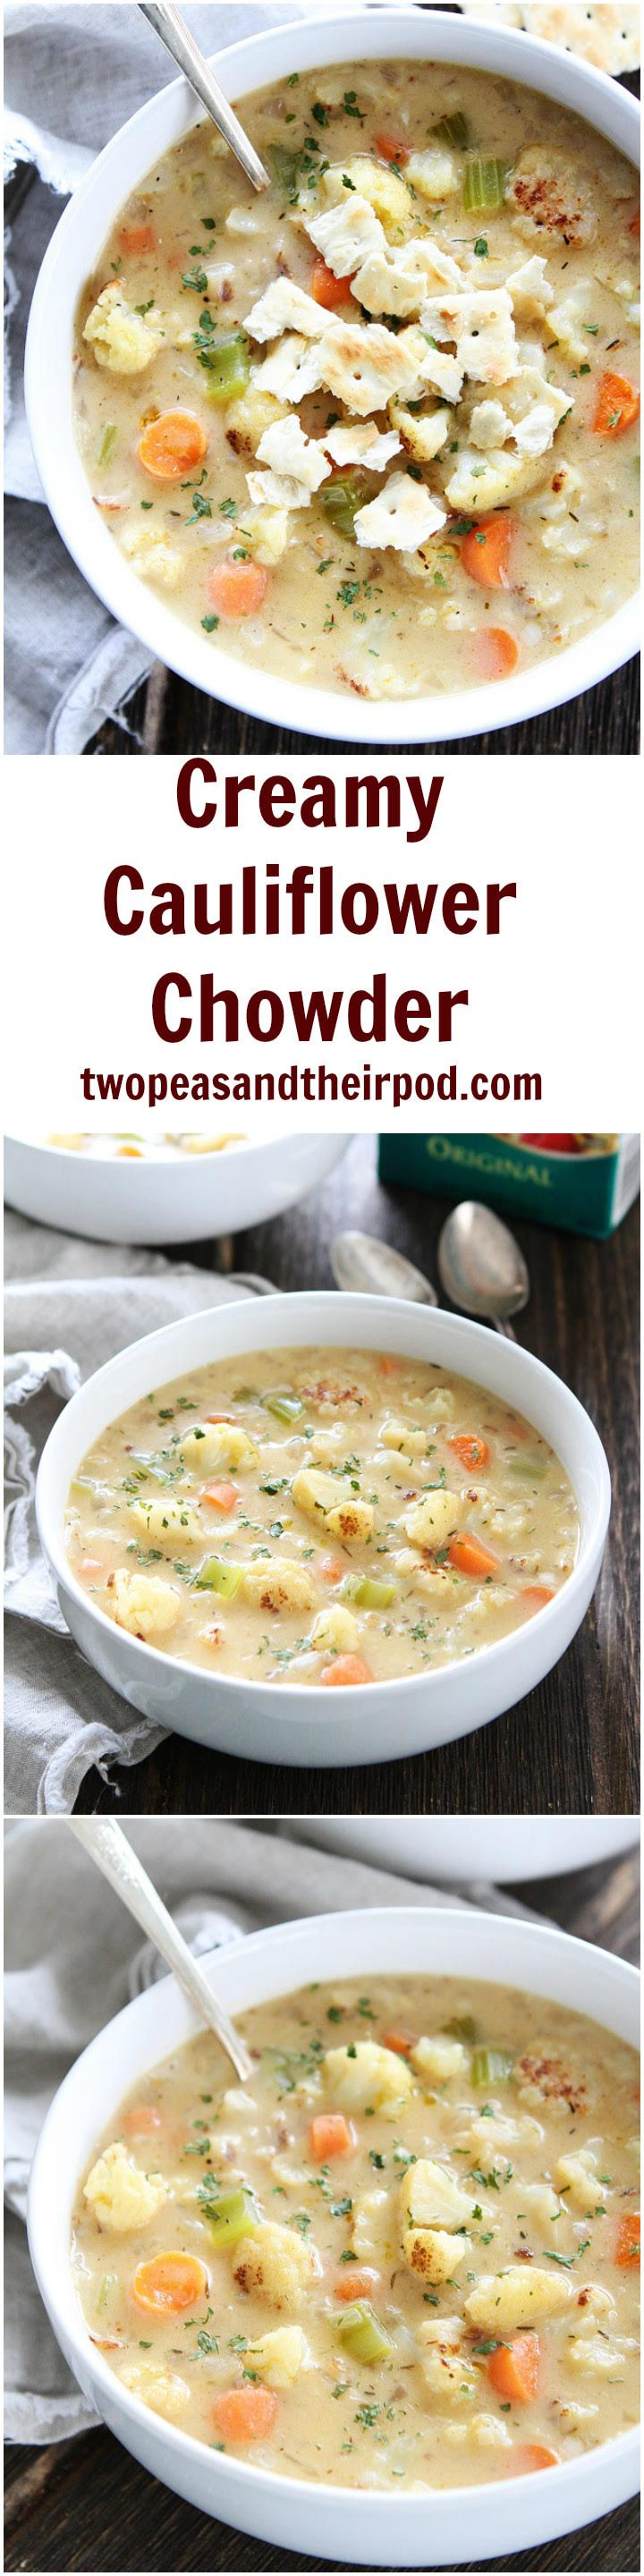 Creamy Cauliflower Chowder Recipe on twopeasandtheirpod.com This lightened up chowder is the BEST! Everyone loves this recipe!